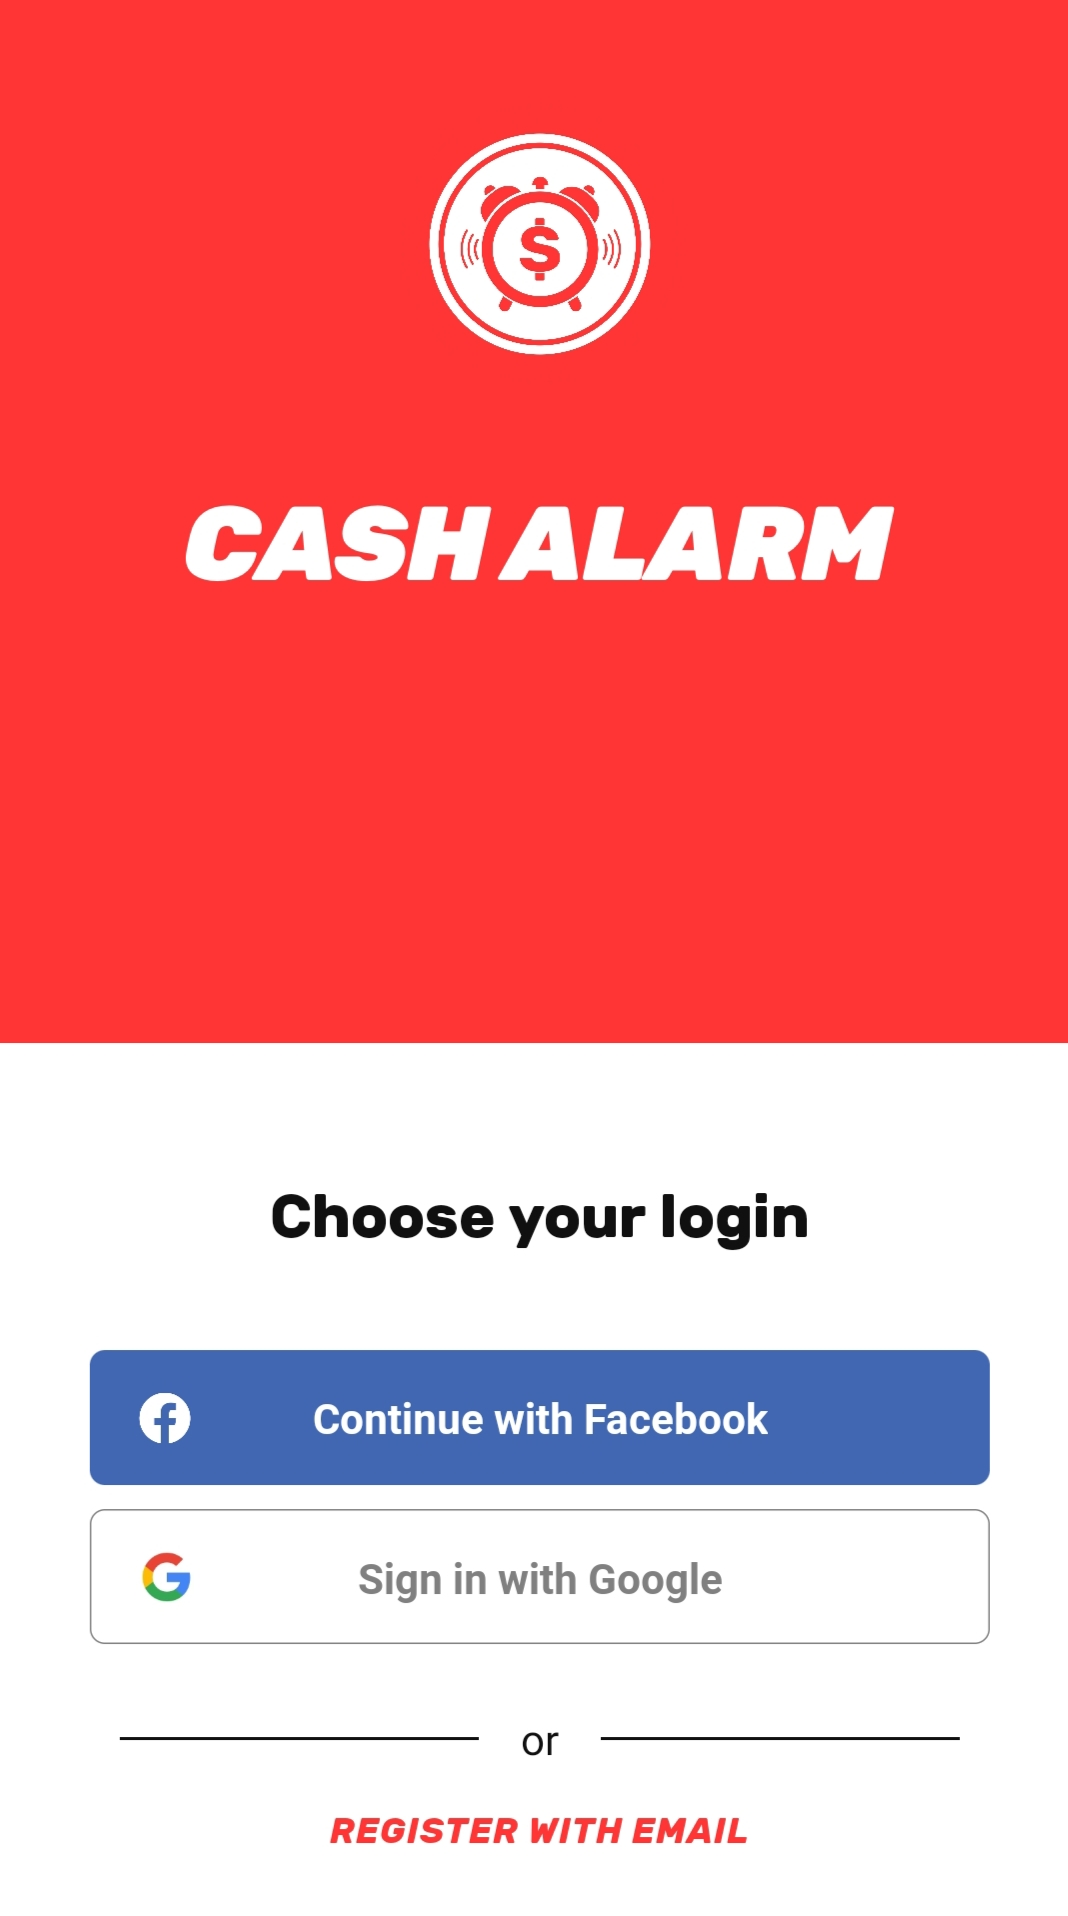 Cash Alarm App - Get ₹65 On Signup | PayPal Earning